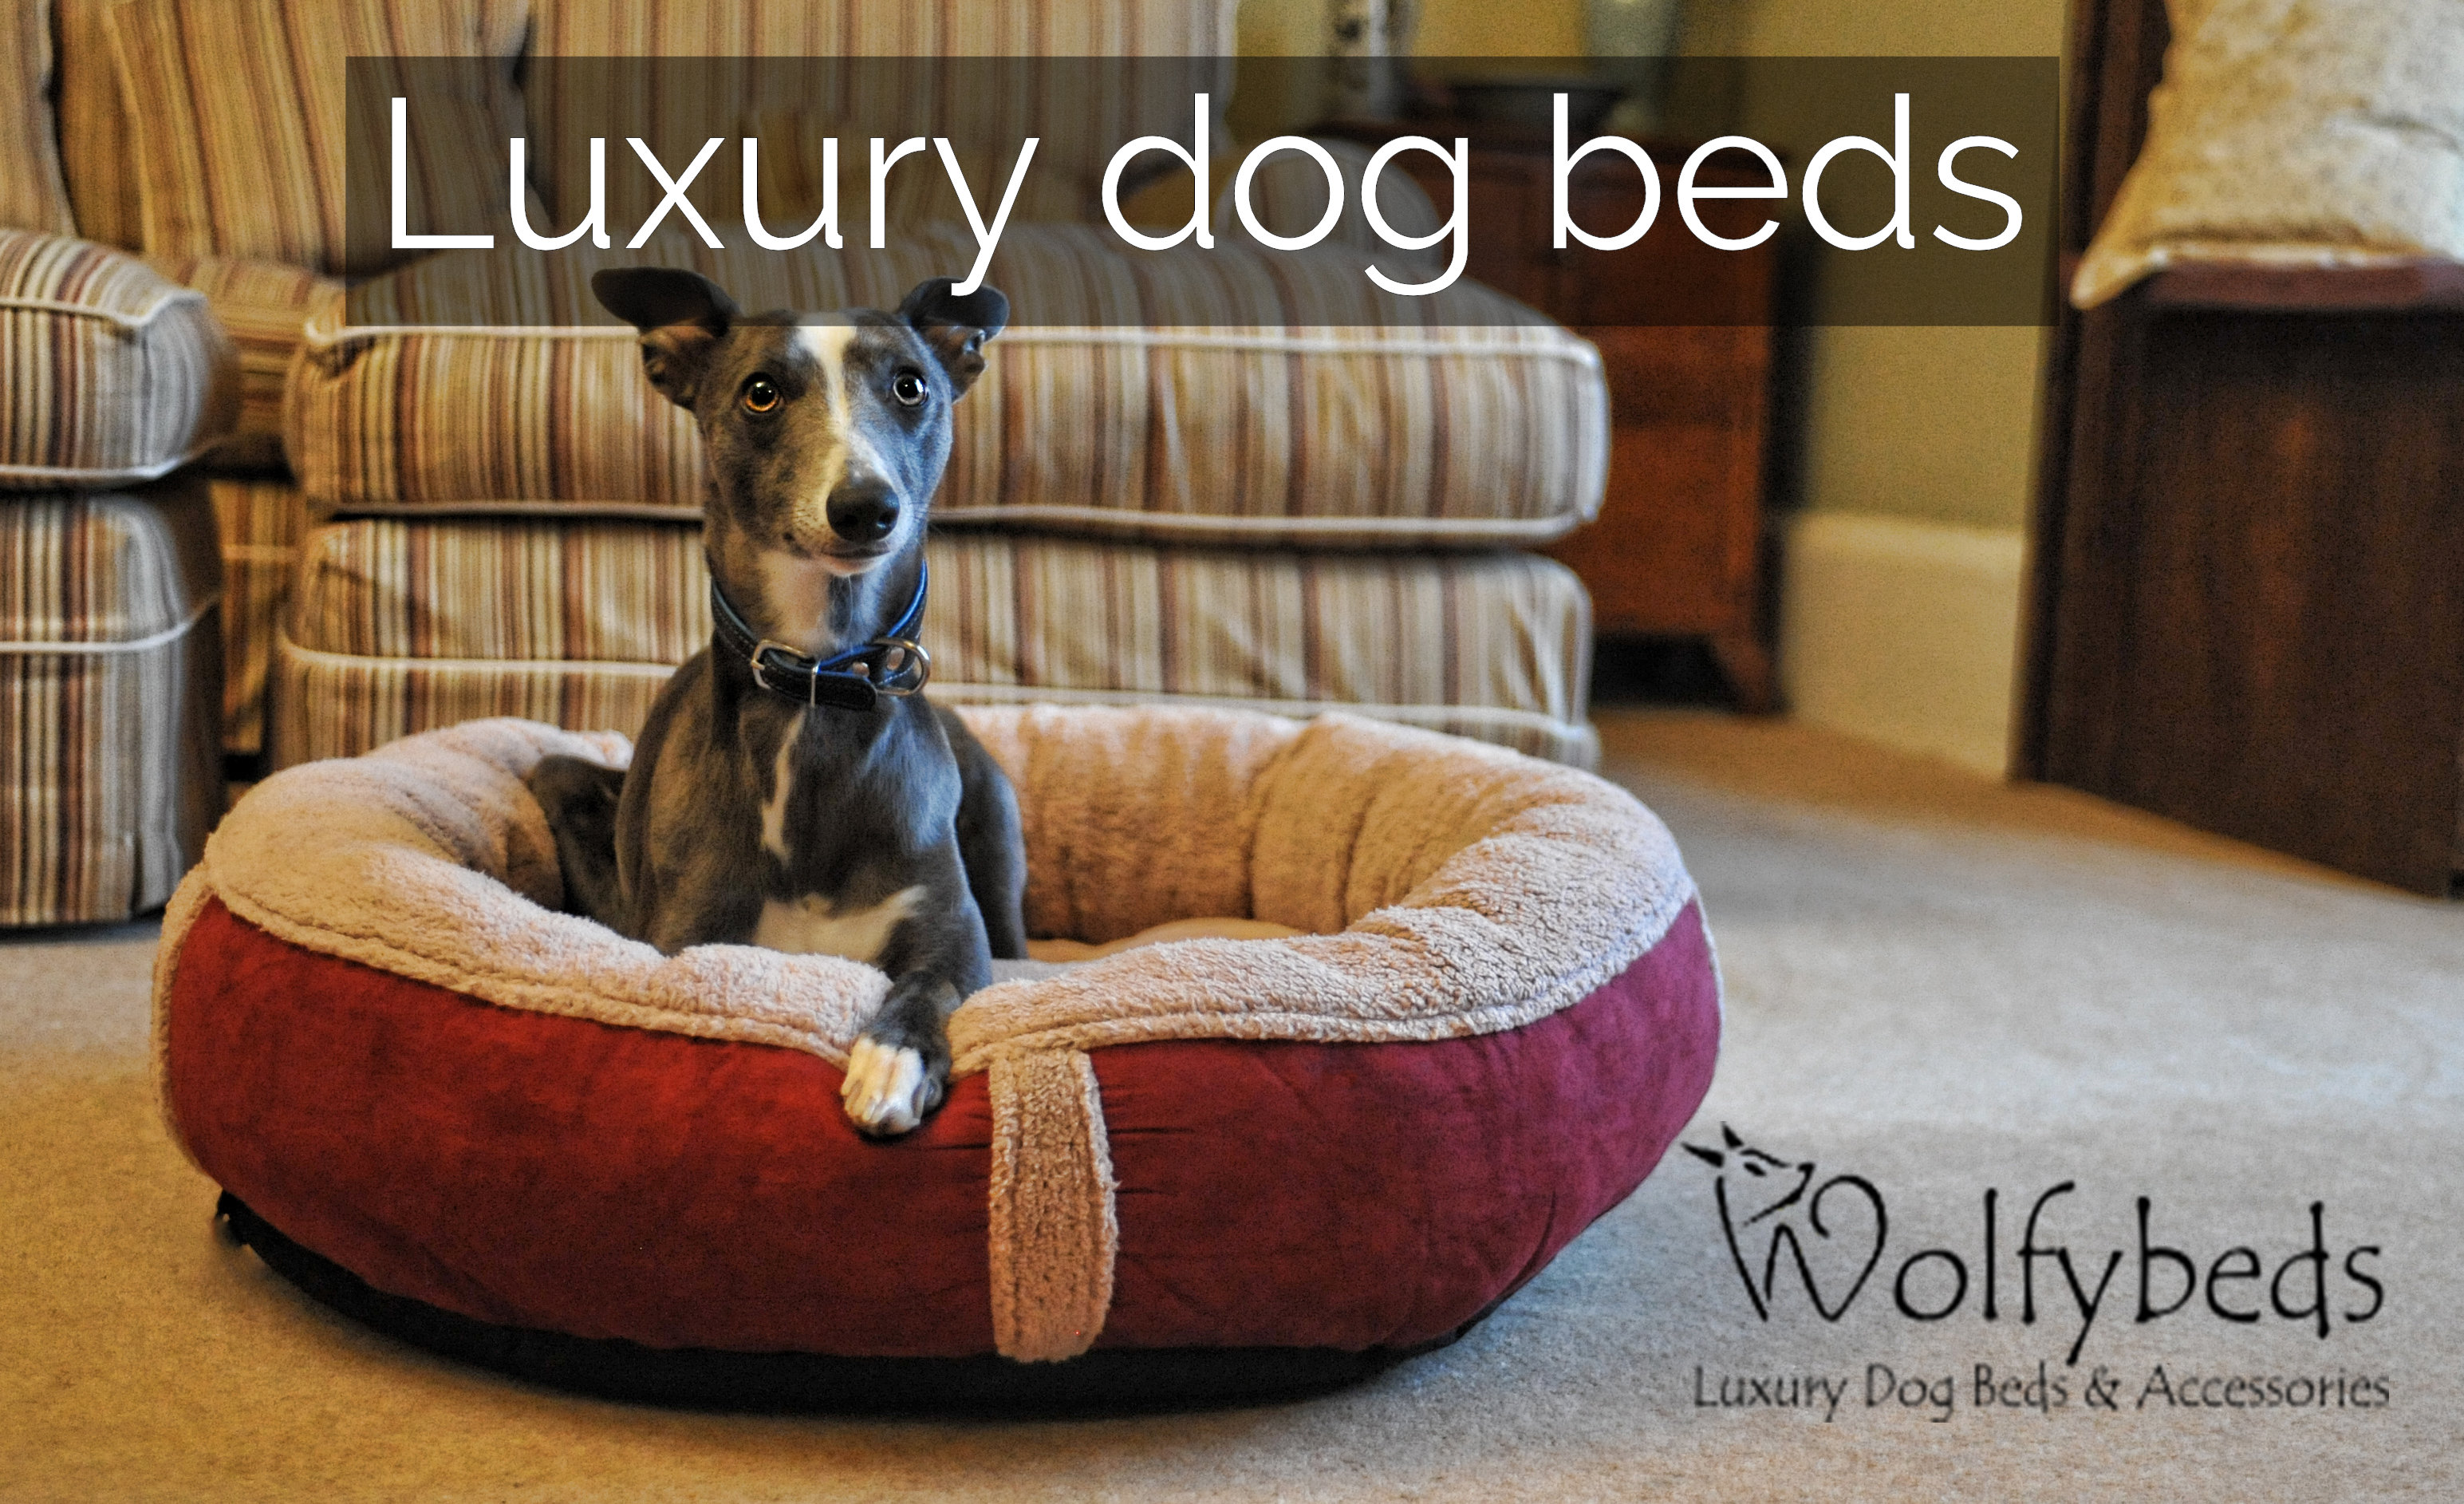 wolfybeds luxury dog beds and accessories. Black Bedroom Furniture Sets. Home Design Ideas